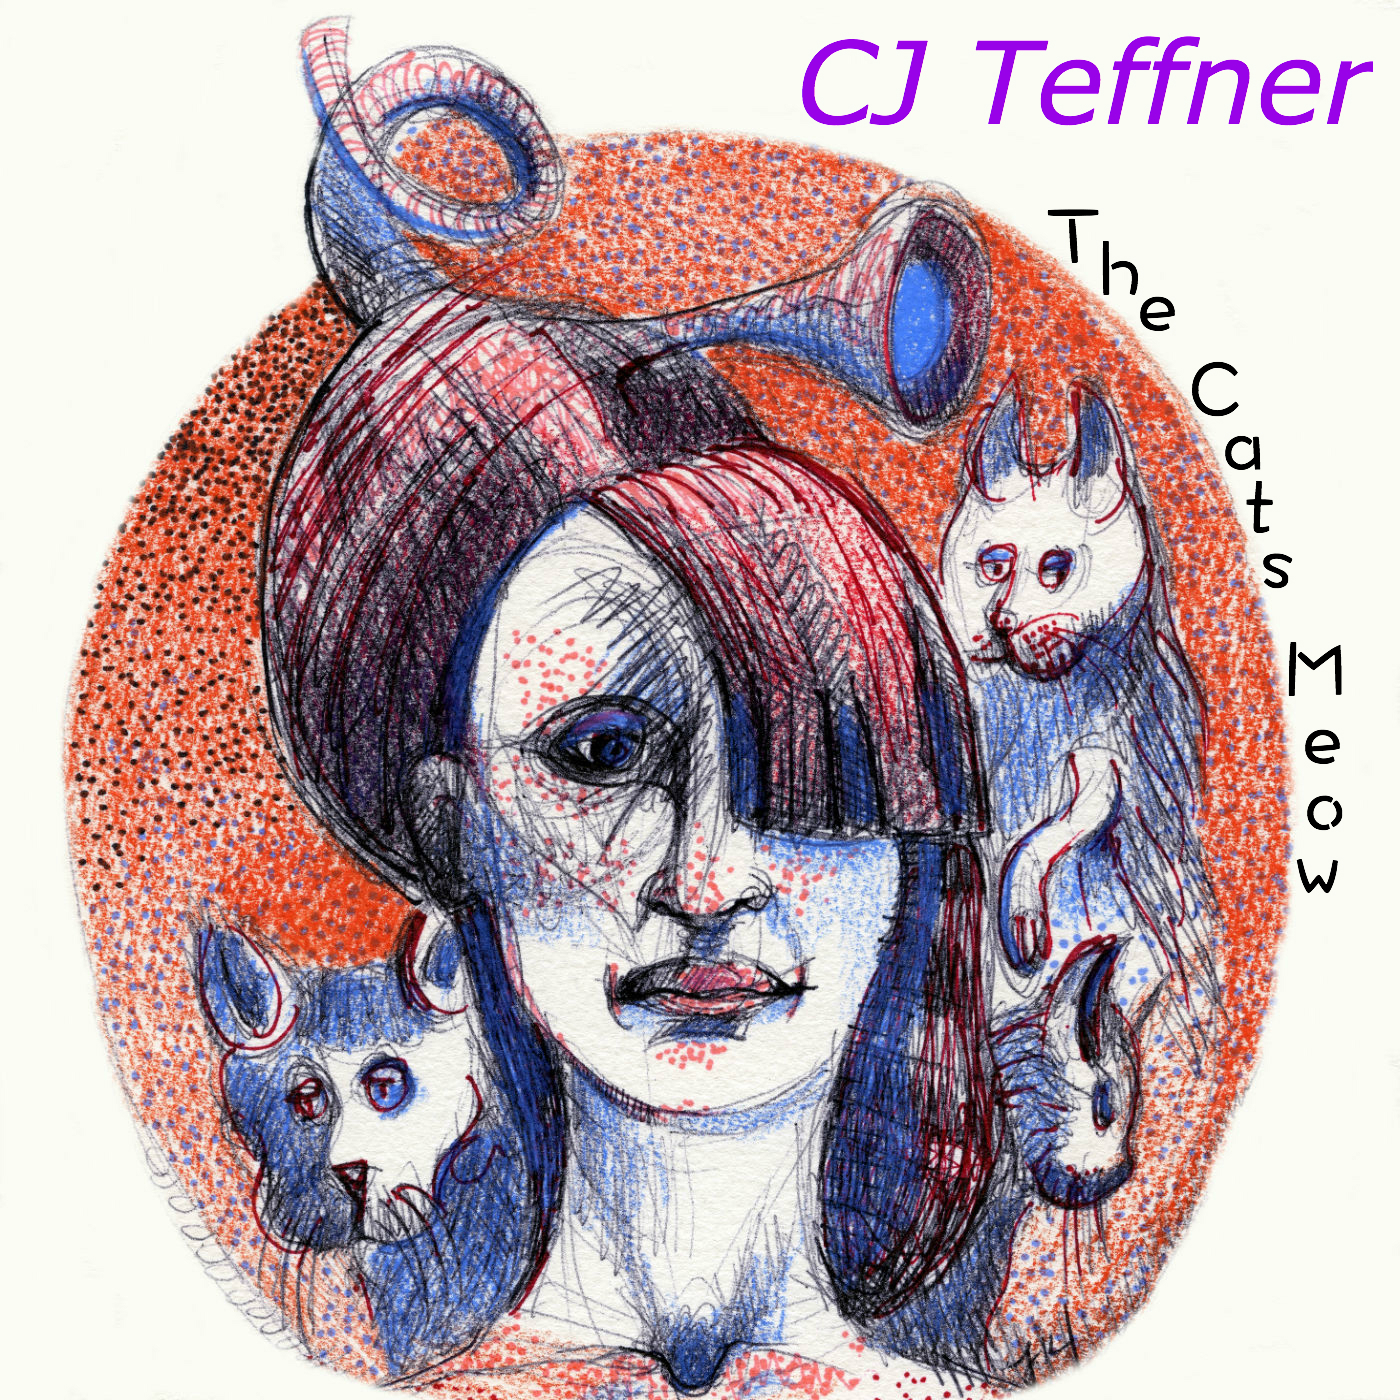 CJ Teffner - Find The Magic (featuring Kathie Crotty Williams) (single)